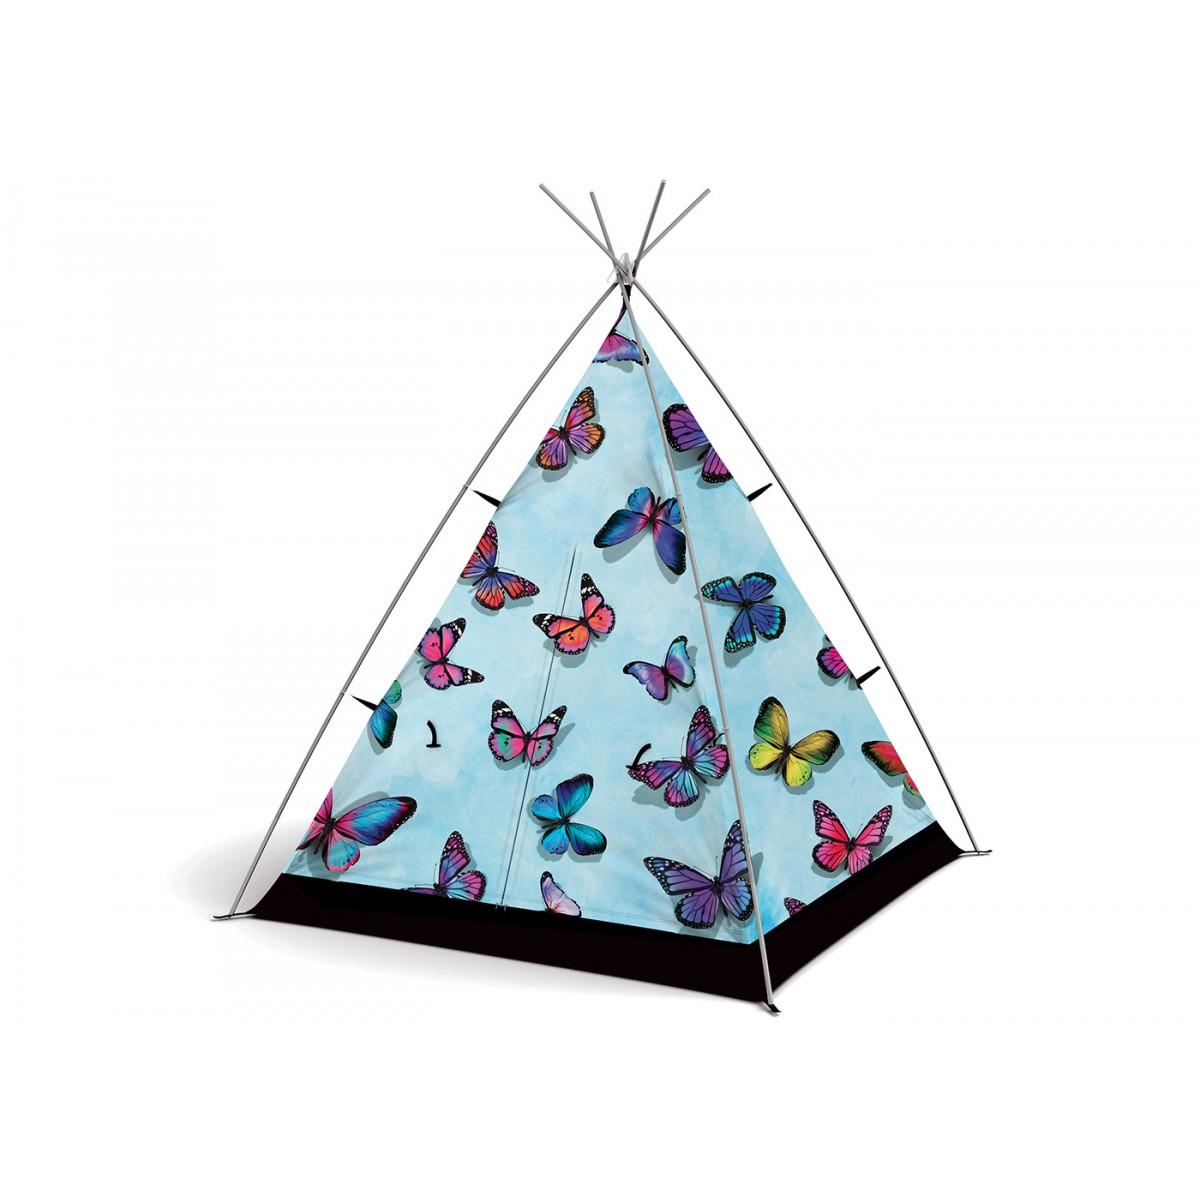 Tente de jardin ou de camping pour enfant th me papillon for Enfant design